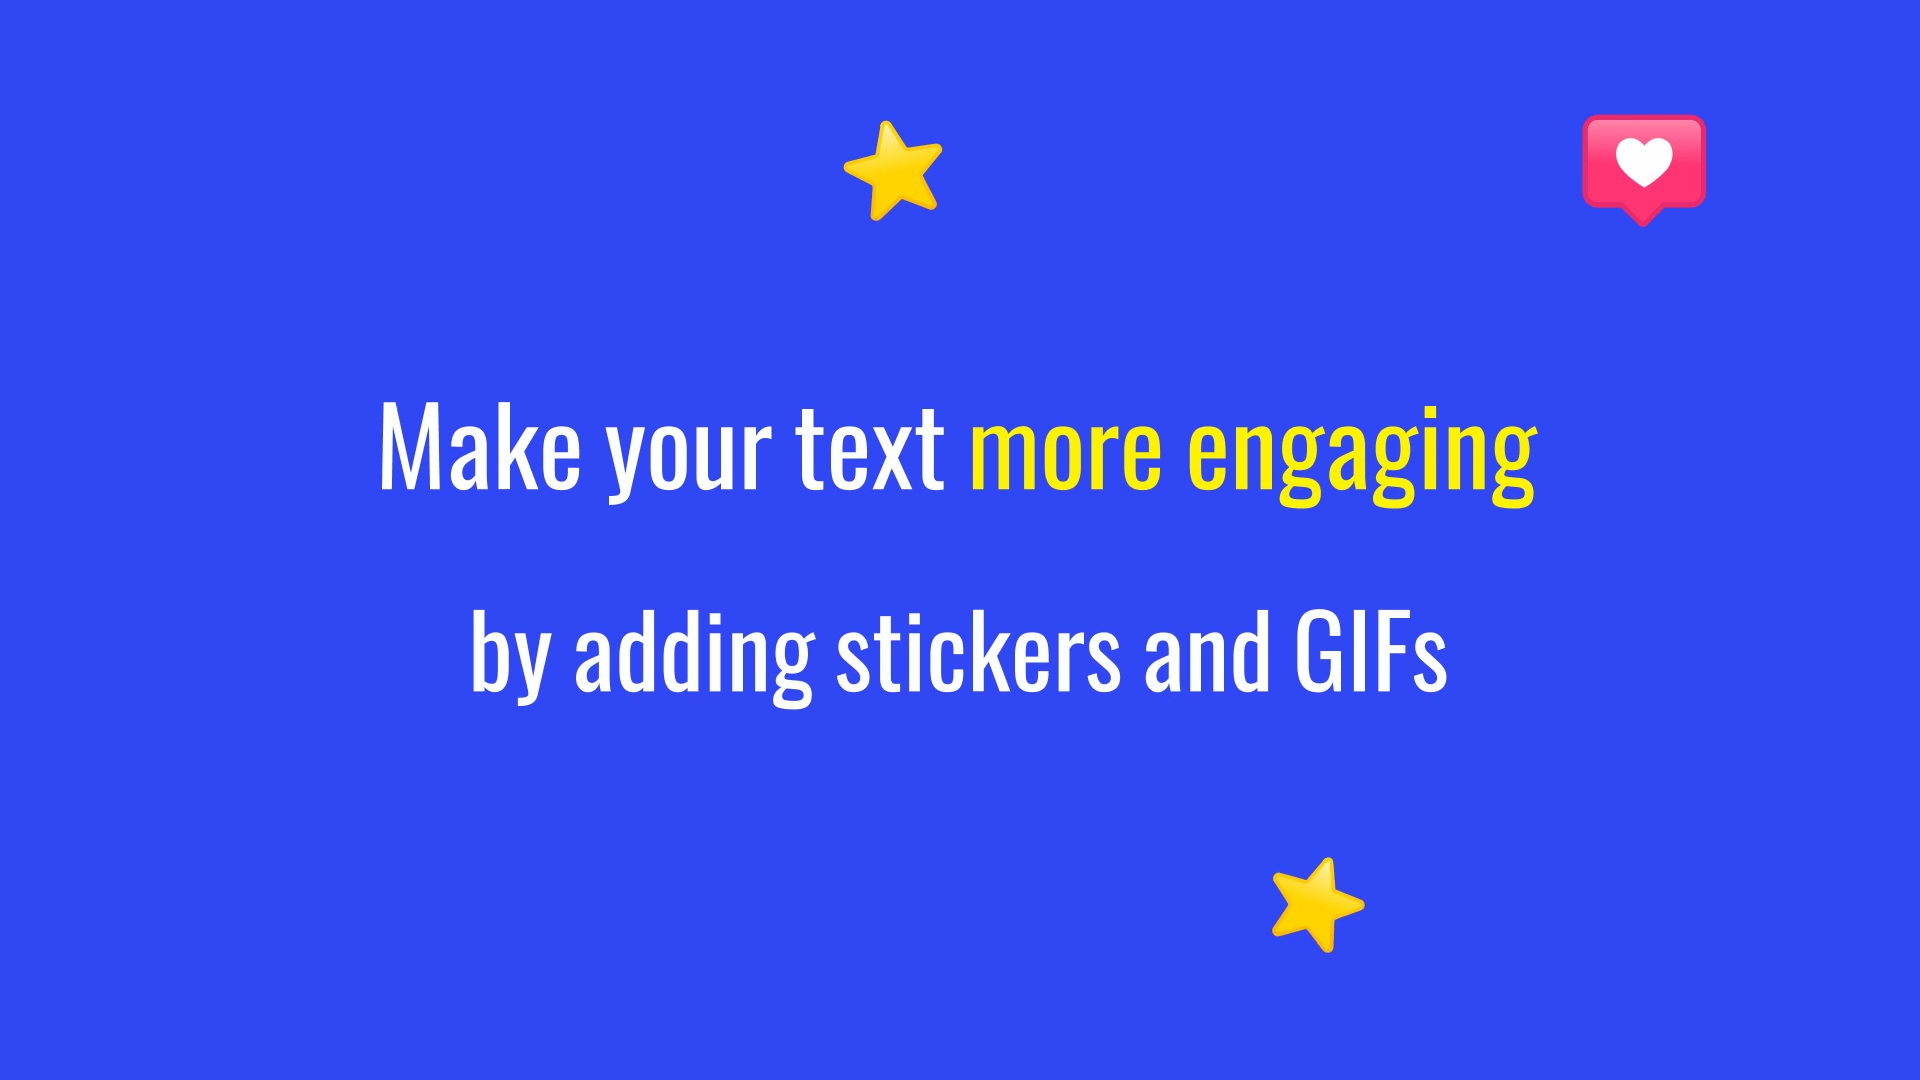 Make your text more engaging